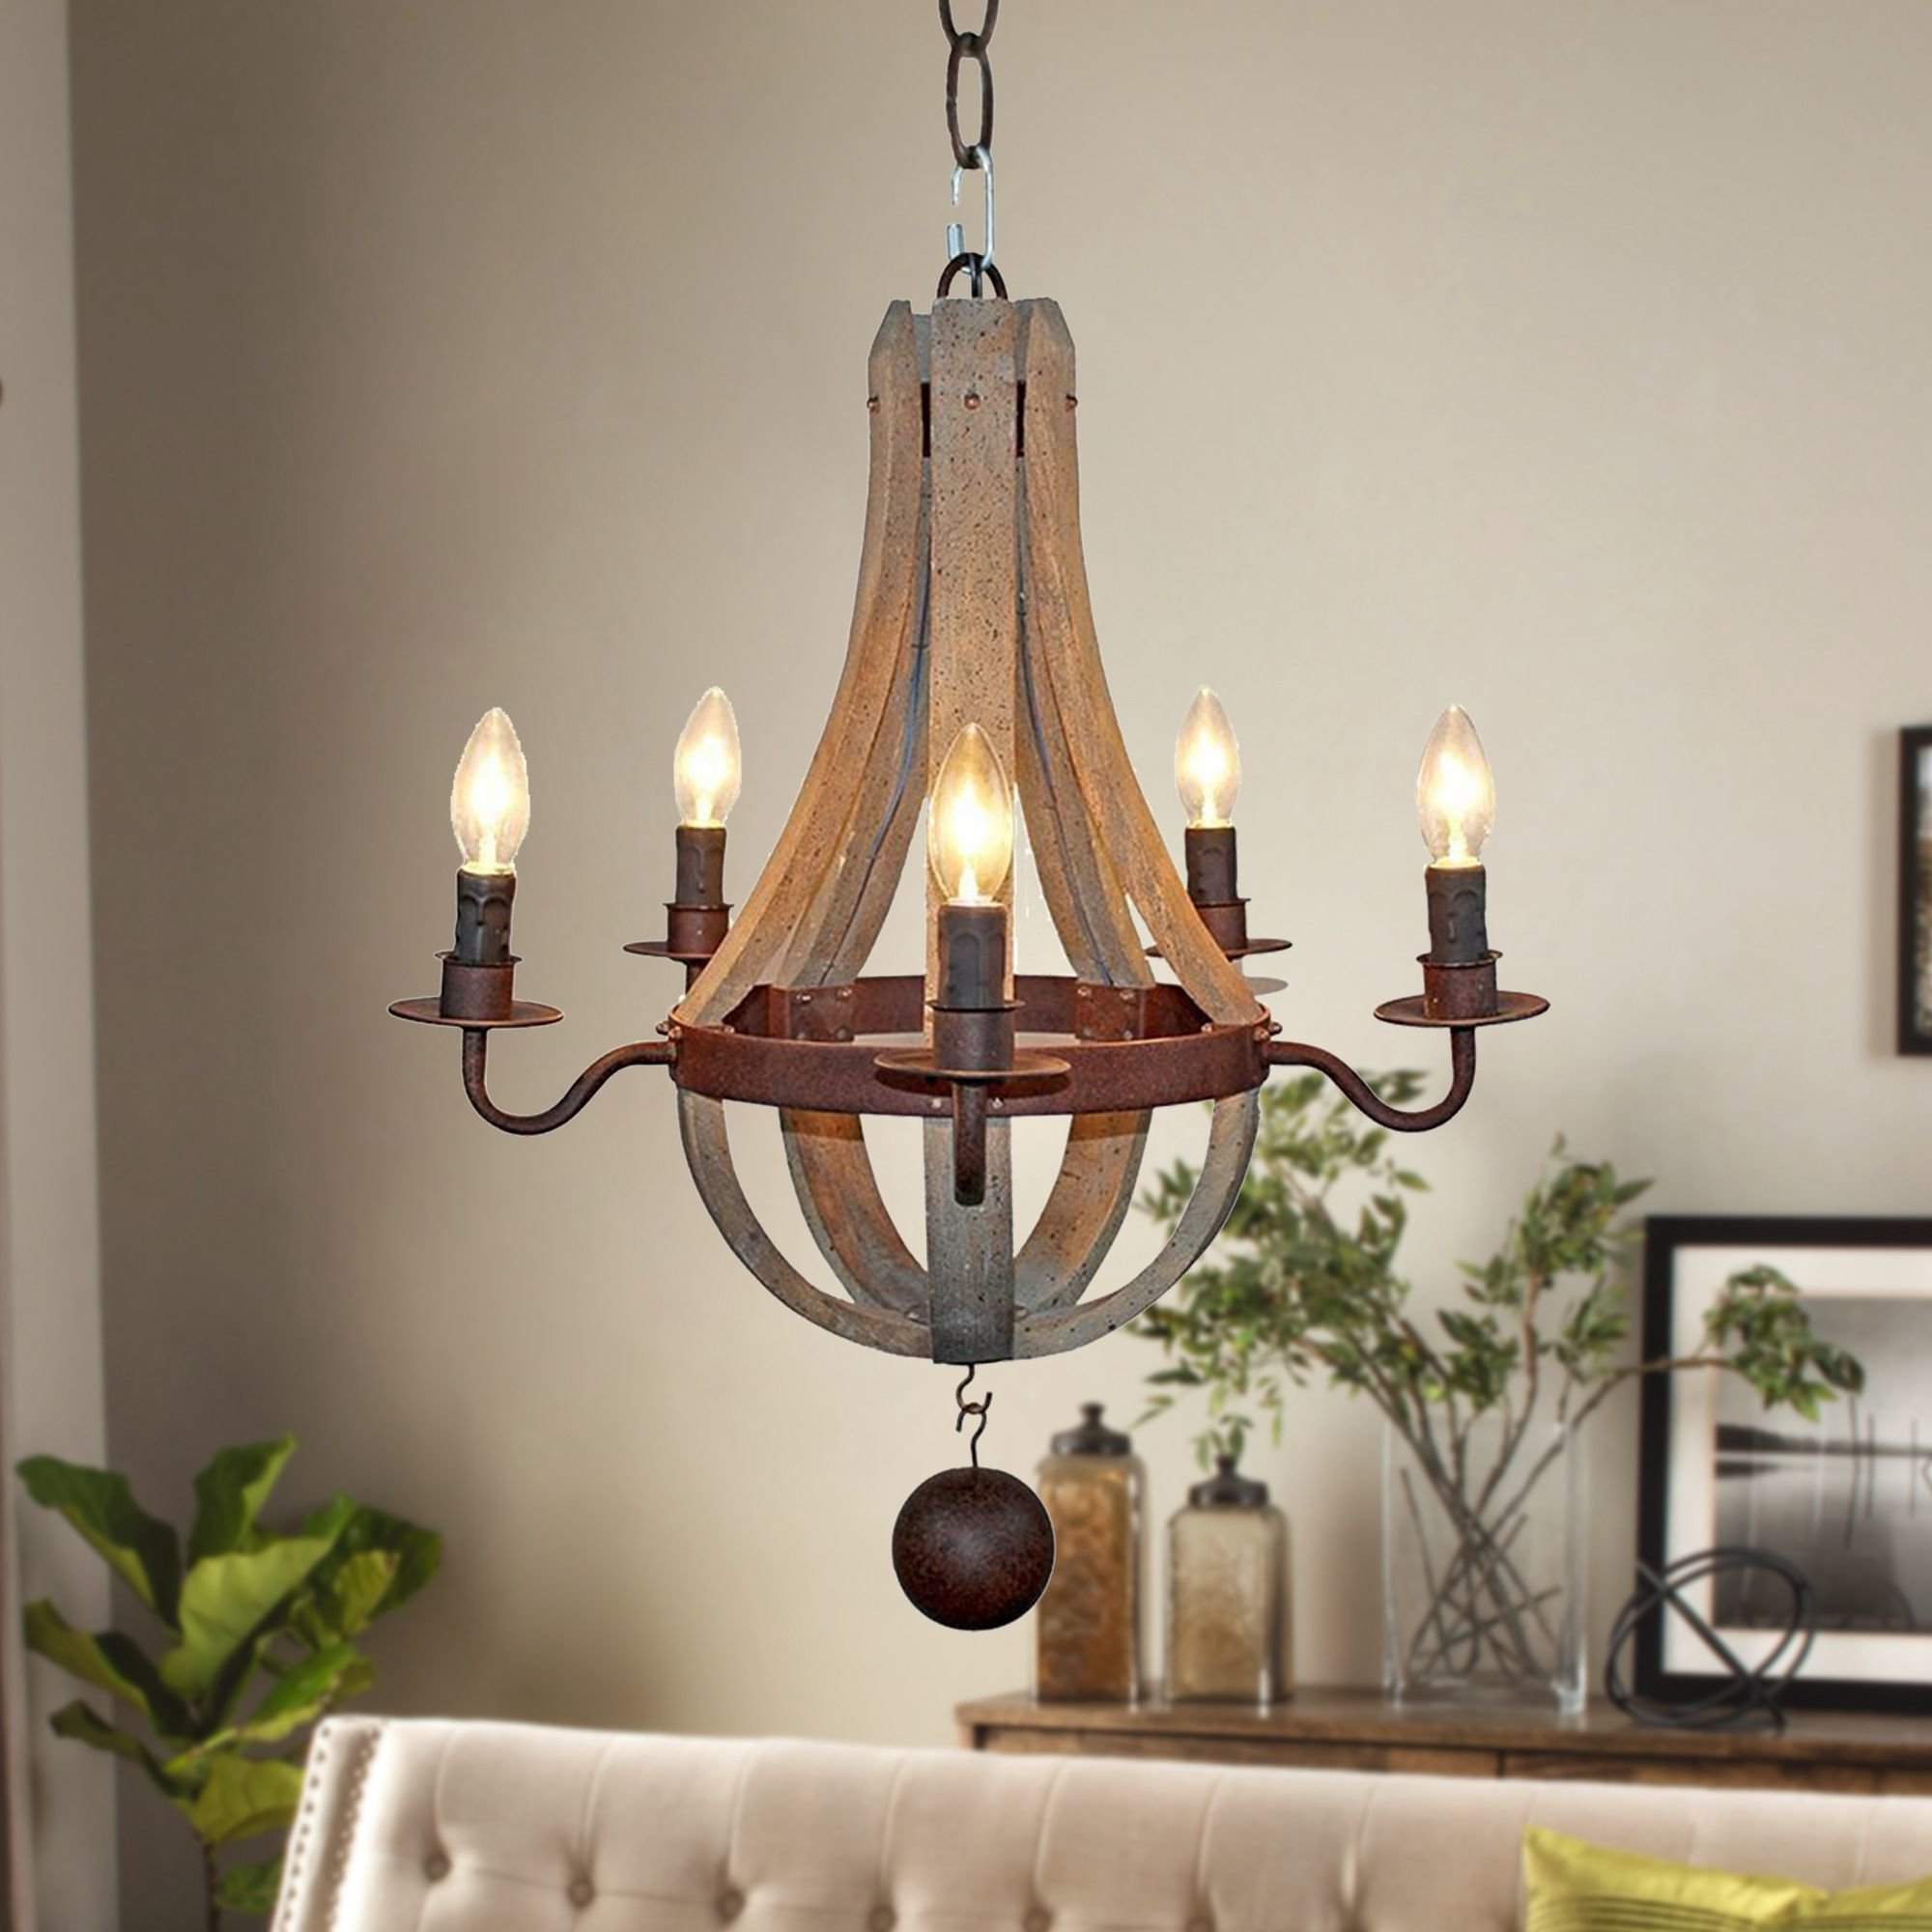 Phifer 6 Light Empire Chandeliers Intended For Most Popular Ophelia & Co. Amata Flask Shape 5 Light Empire Chandelier (Gallery 14 of 20)